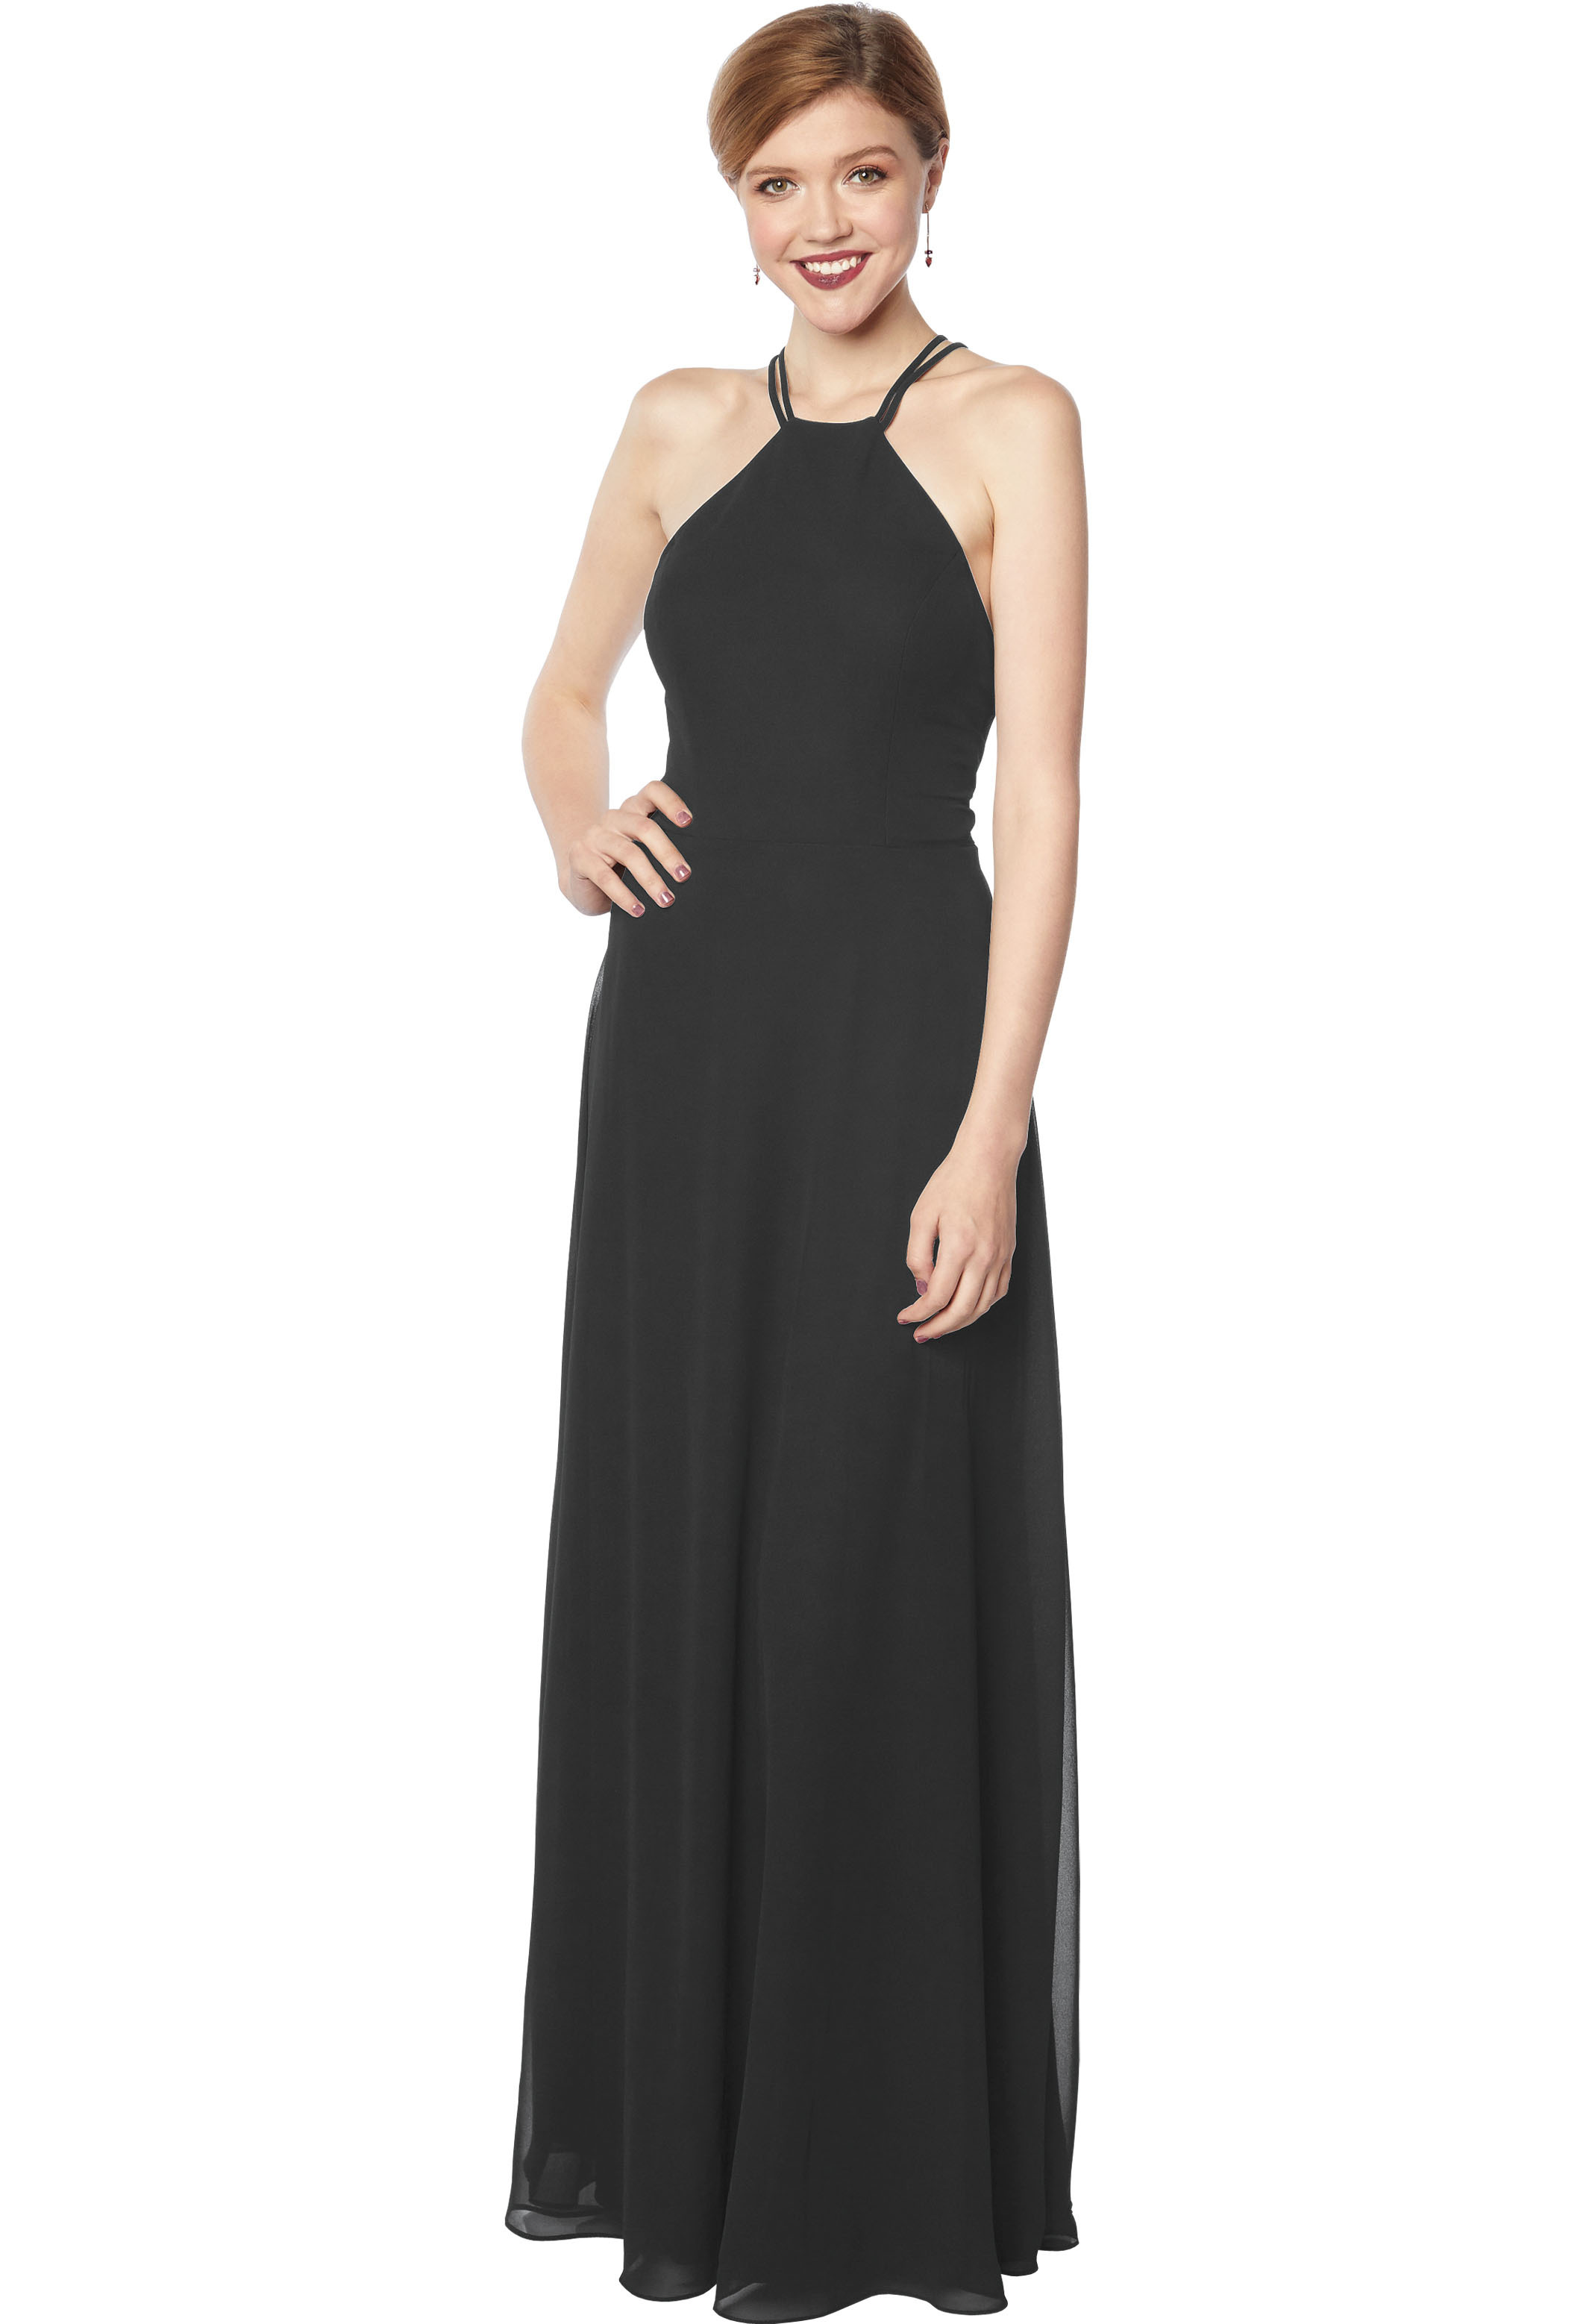 Bill Levkoff CHARCOAL Chiffon Sleeveless A-line gown, $178.00 Front